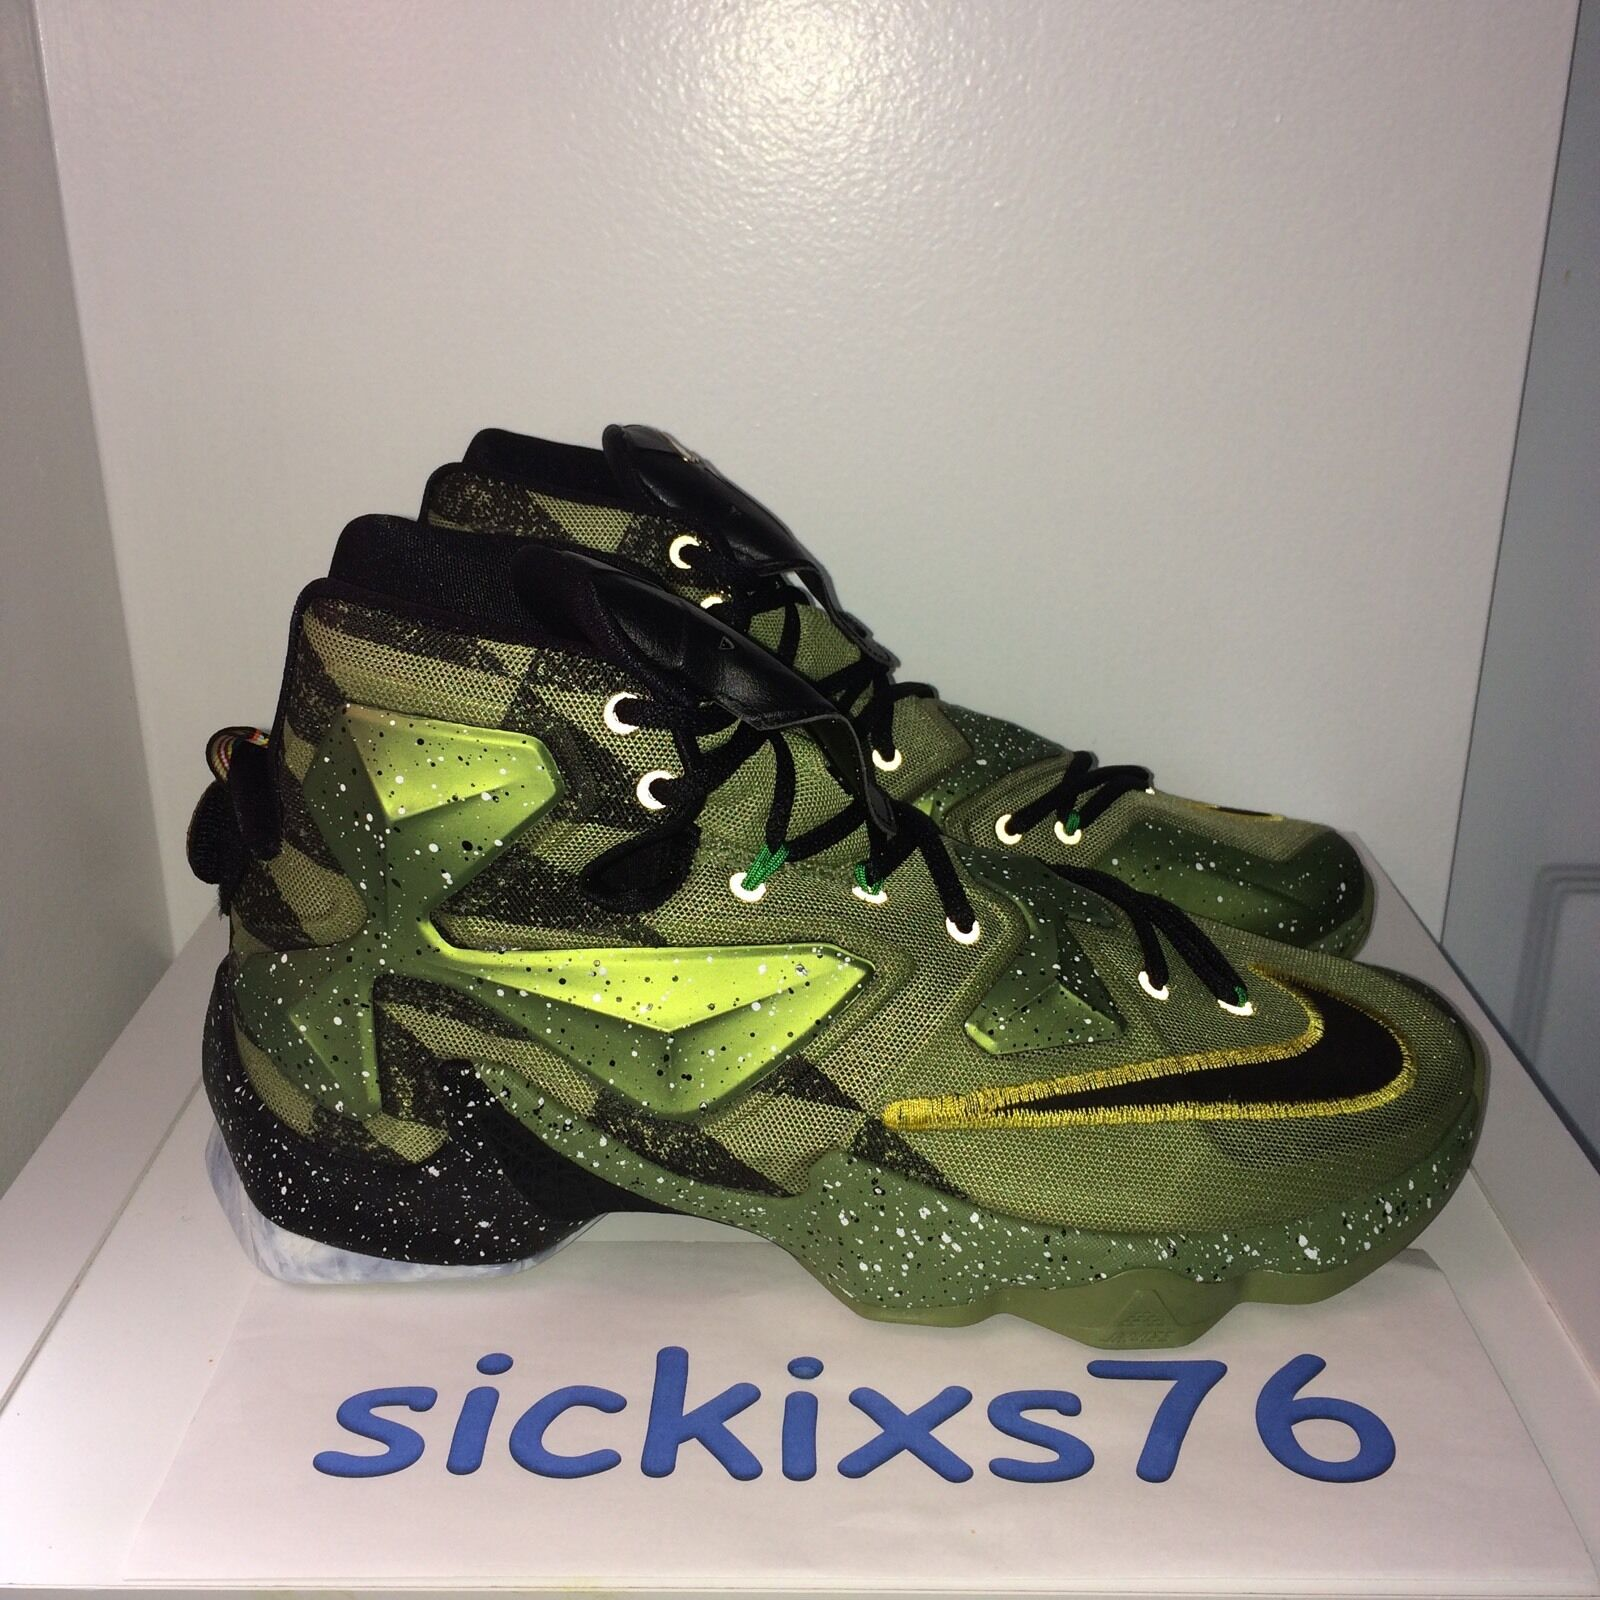 2015 Shoes Nike Lebron Xiii Lmtd Mens Basketball 807219 Sepatu Basket Kevin Durant Kd 9 Home Original 843392 411 060 Sz 7c3d69